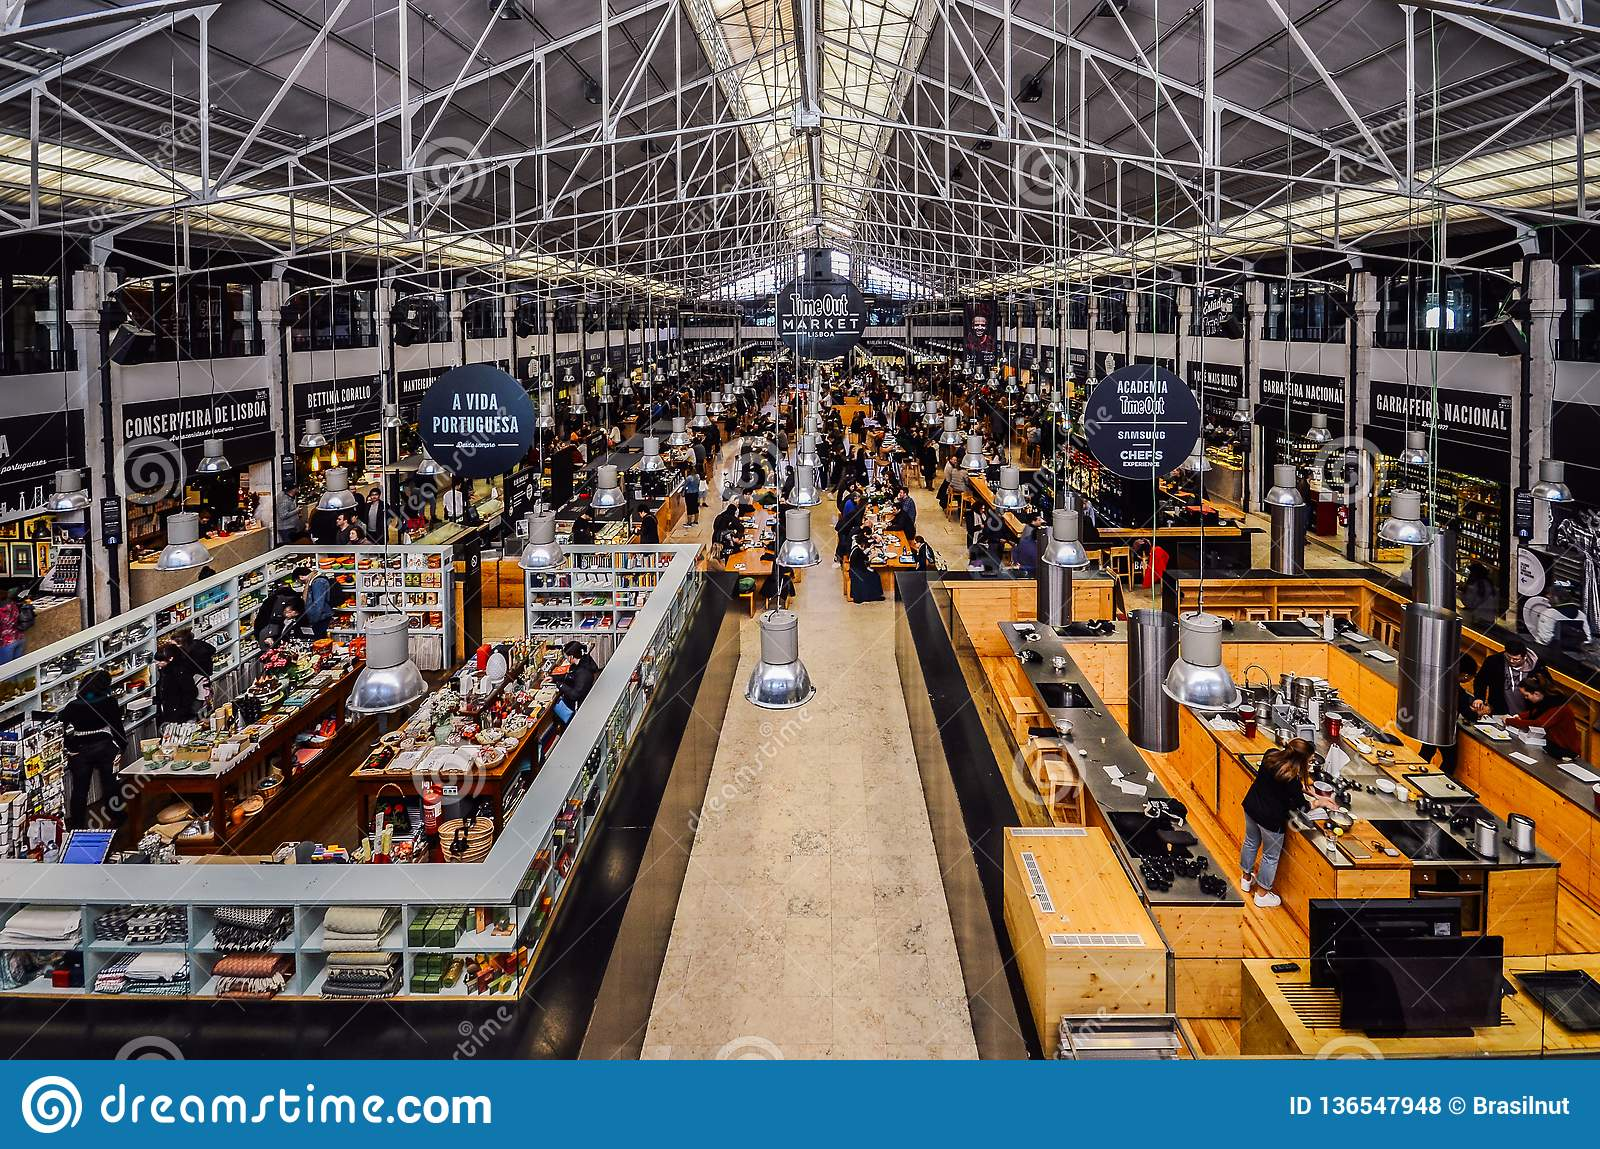 Time Out Food Market Mercado da Ribeira in Lisbon is a major gastronomic  tourist attraction 1aeee727e7d76